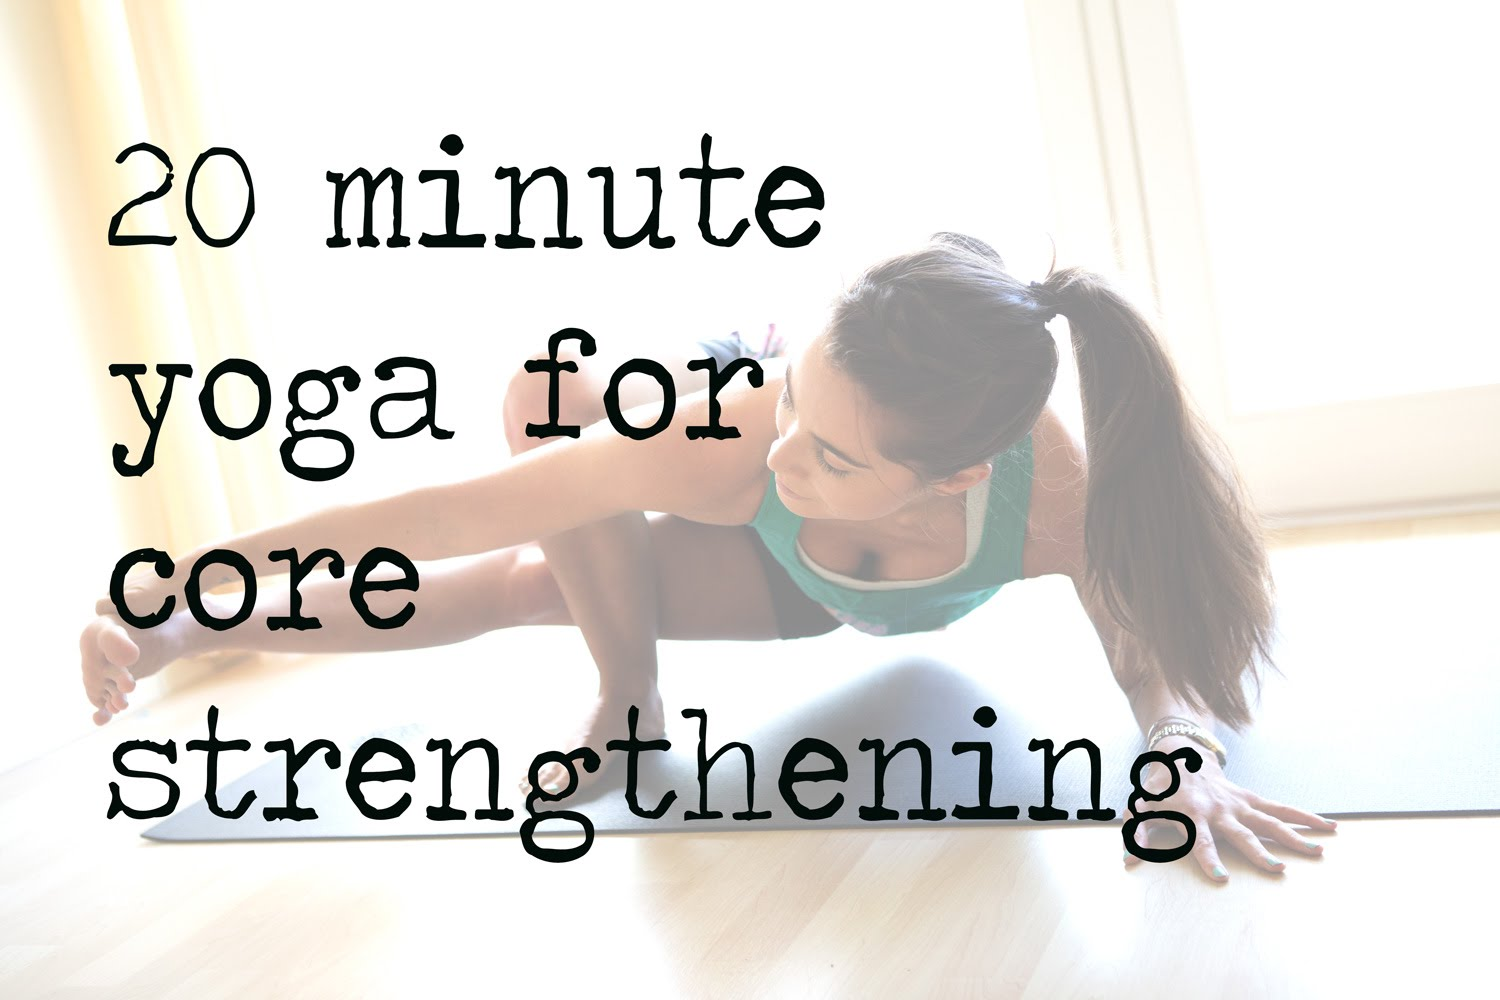 20 Minute Yoga Flow for Core Strengthening